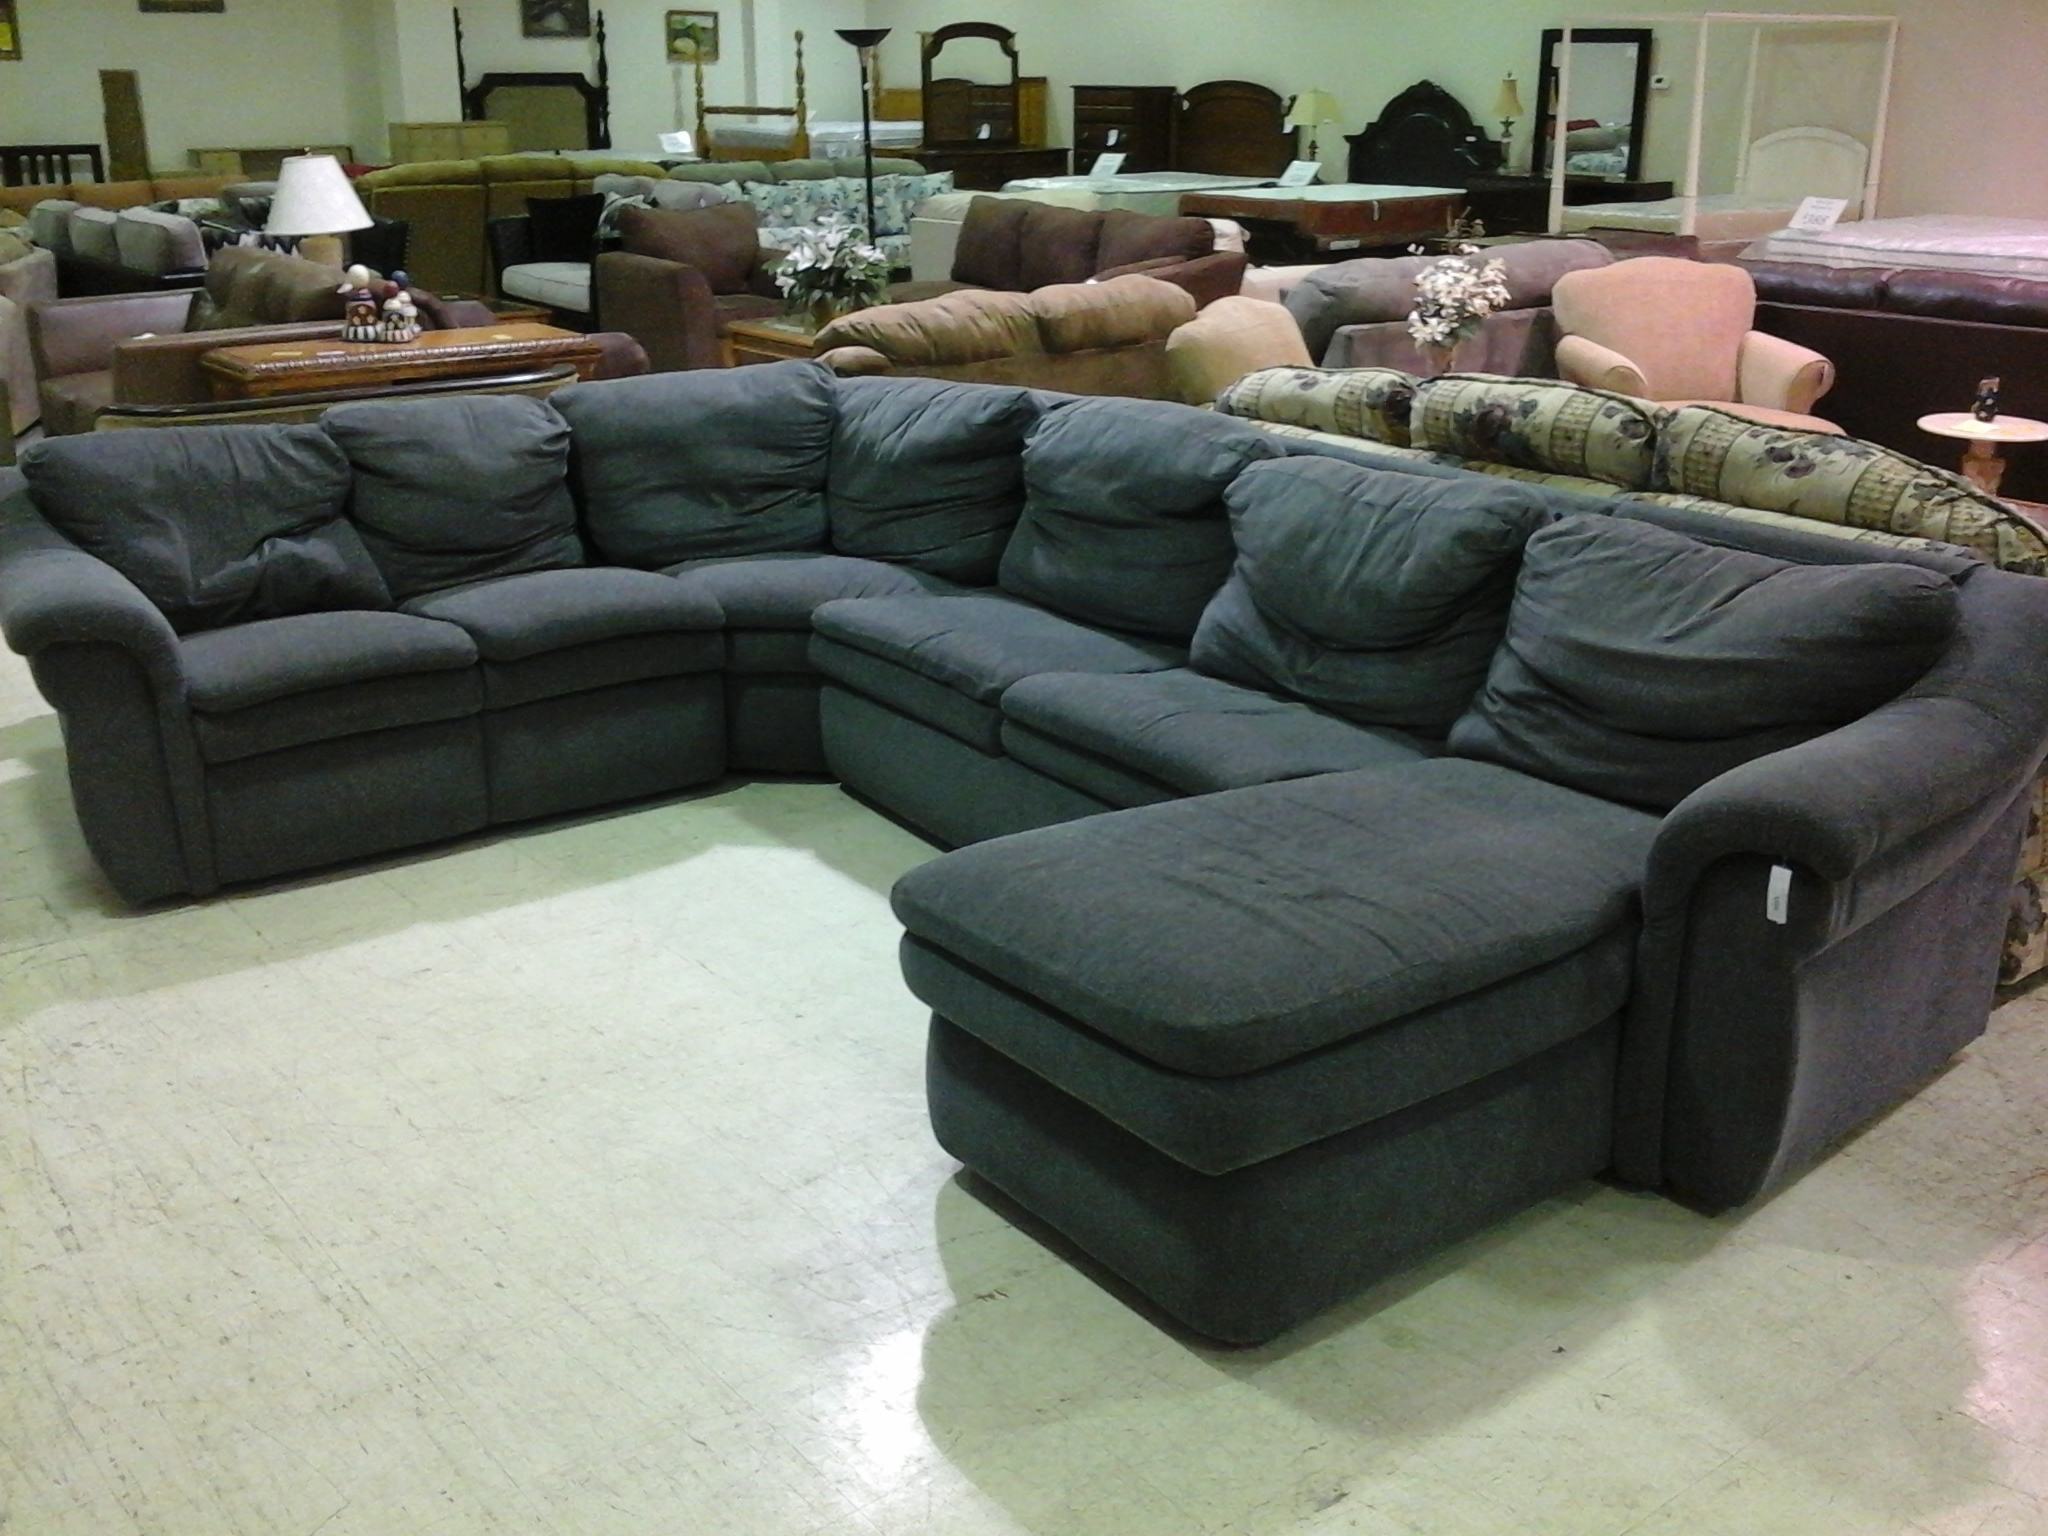 Microfiber Sectional Sofa With Sleeper Httpml2R Com Pinterest throughout Ontario Canada Sectional Sofas (Image 7 of 10)